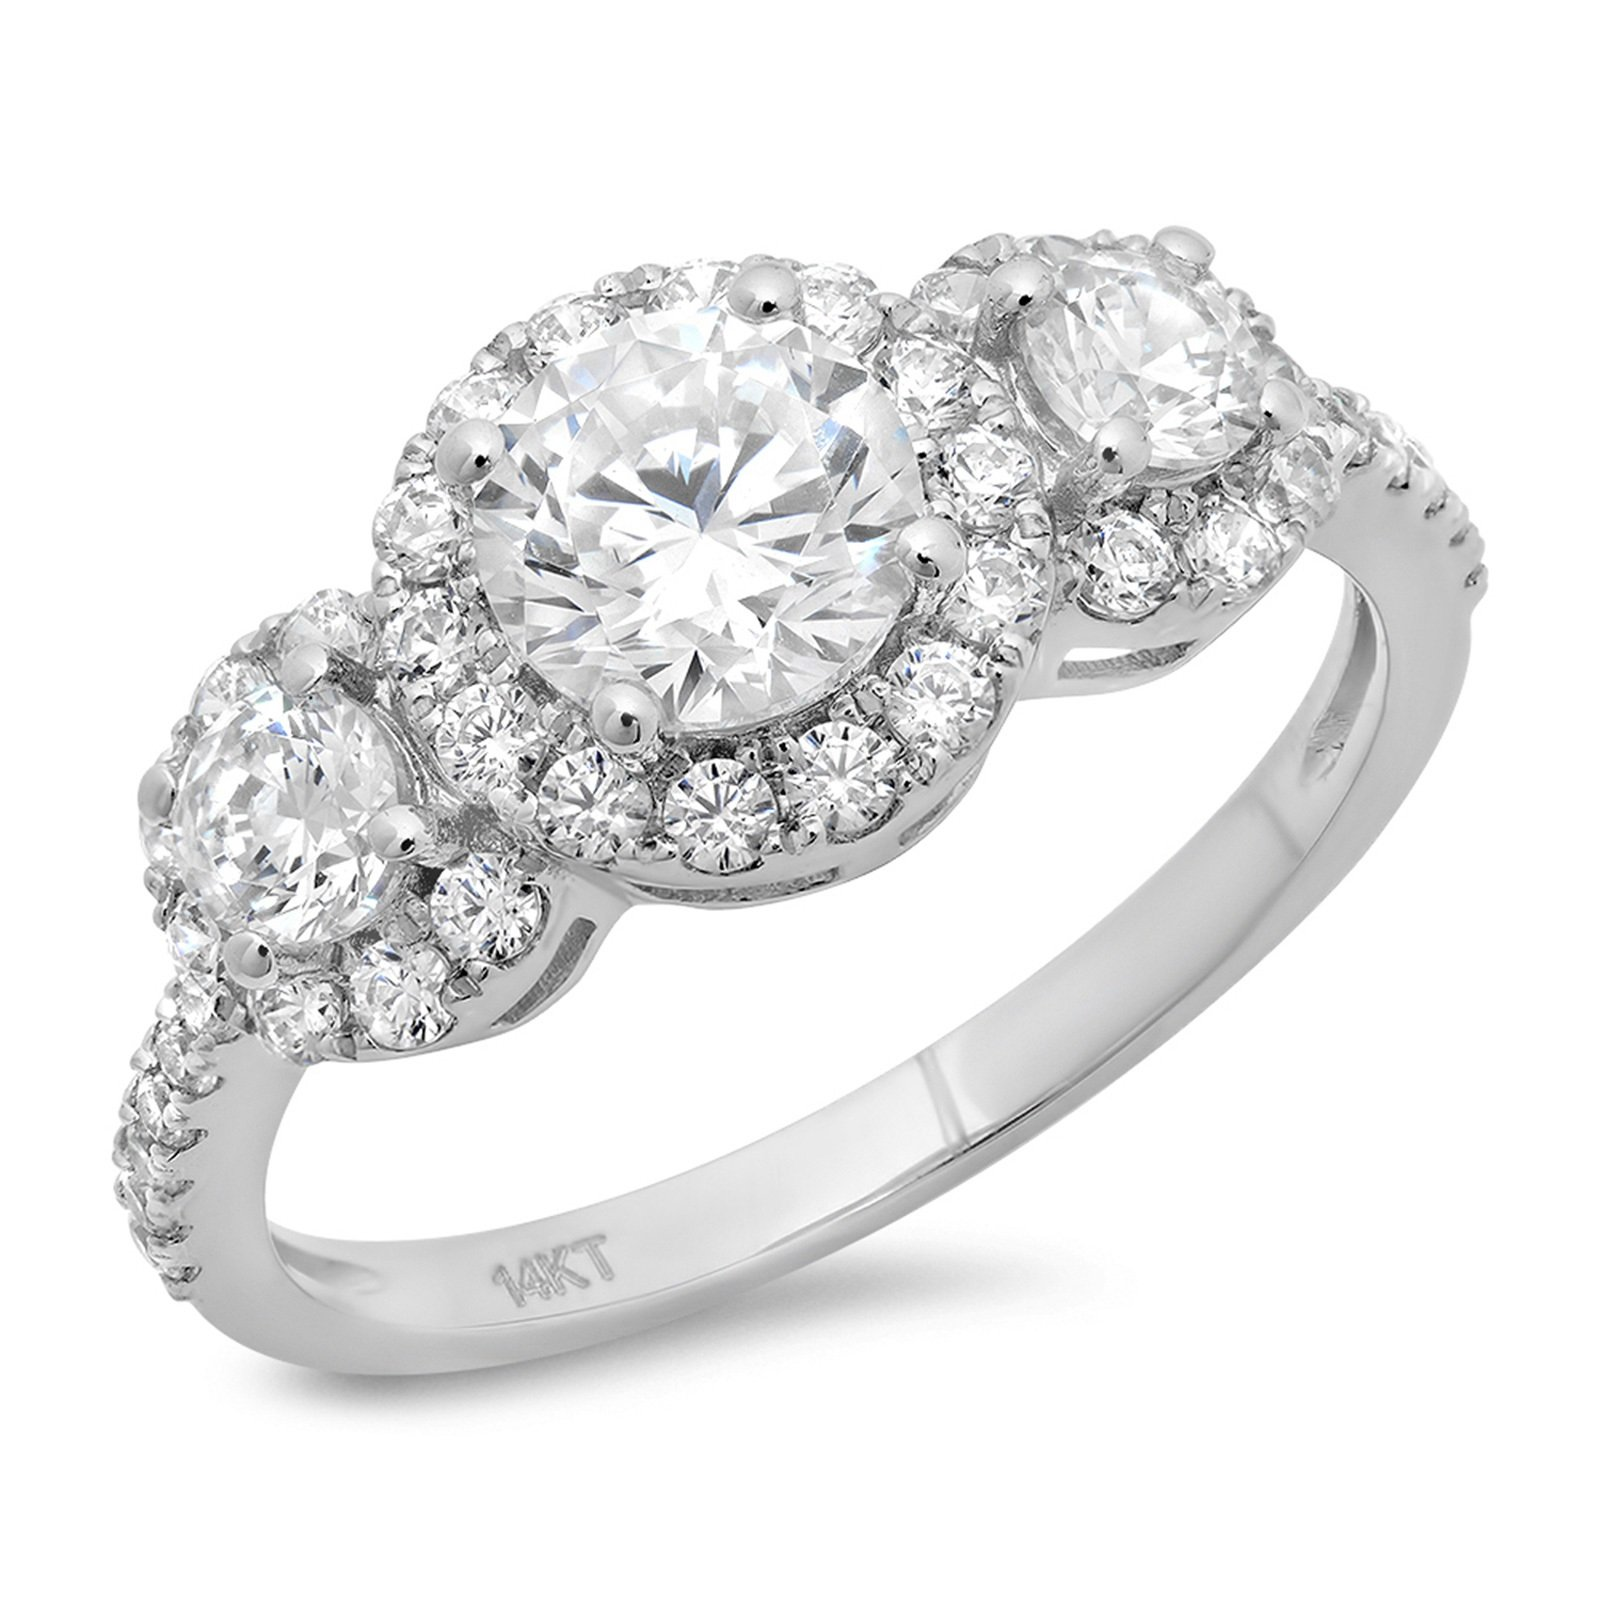 Clara Pucci 1.6 CT Round Cut Solitaire Engagement Ring Pave Halo 14k White Gold Bridal Band, Size 8 by Clara Pucci